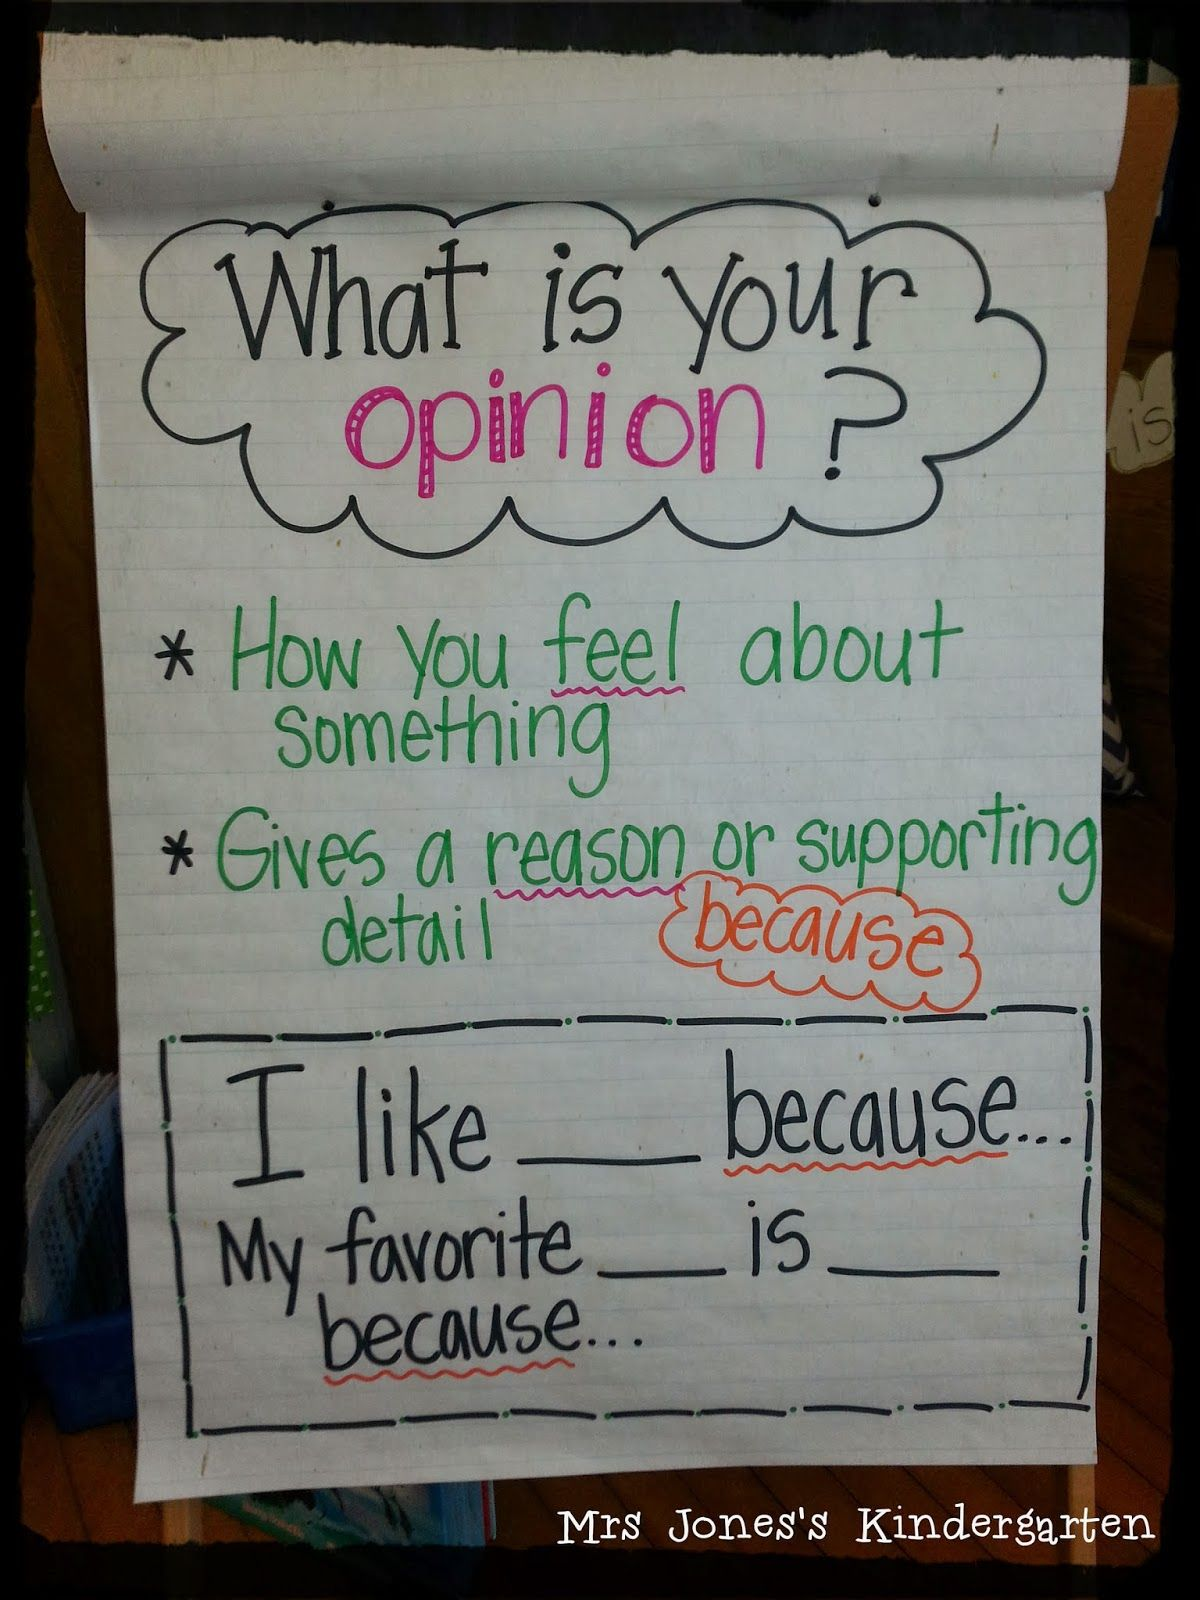 Mrs Jones's Kindergarten: Opinion Writing Ideas + Other